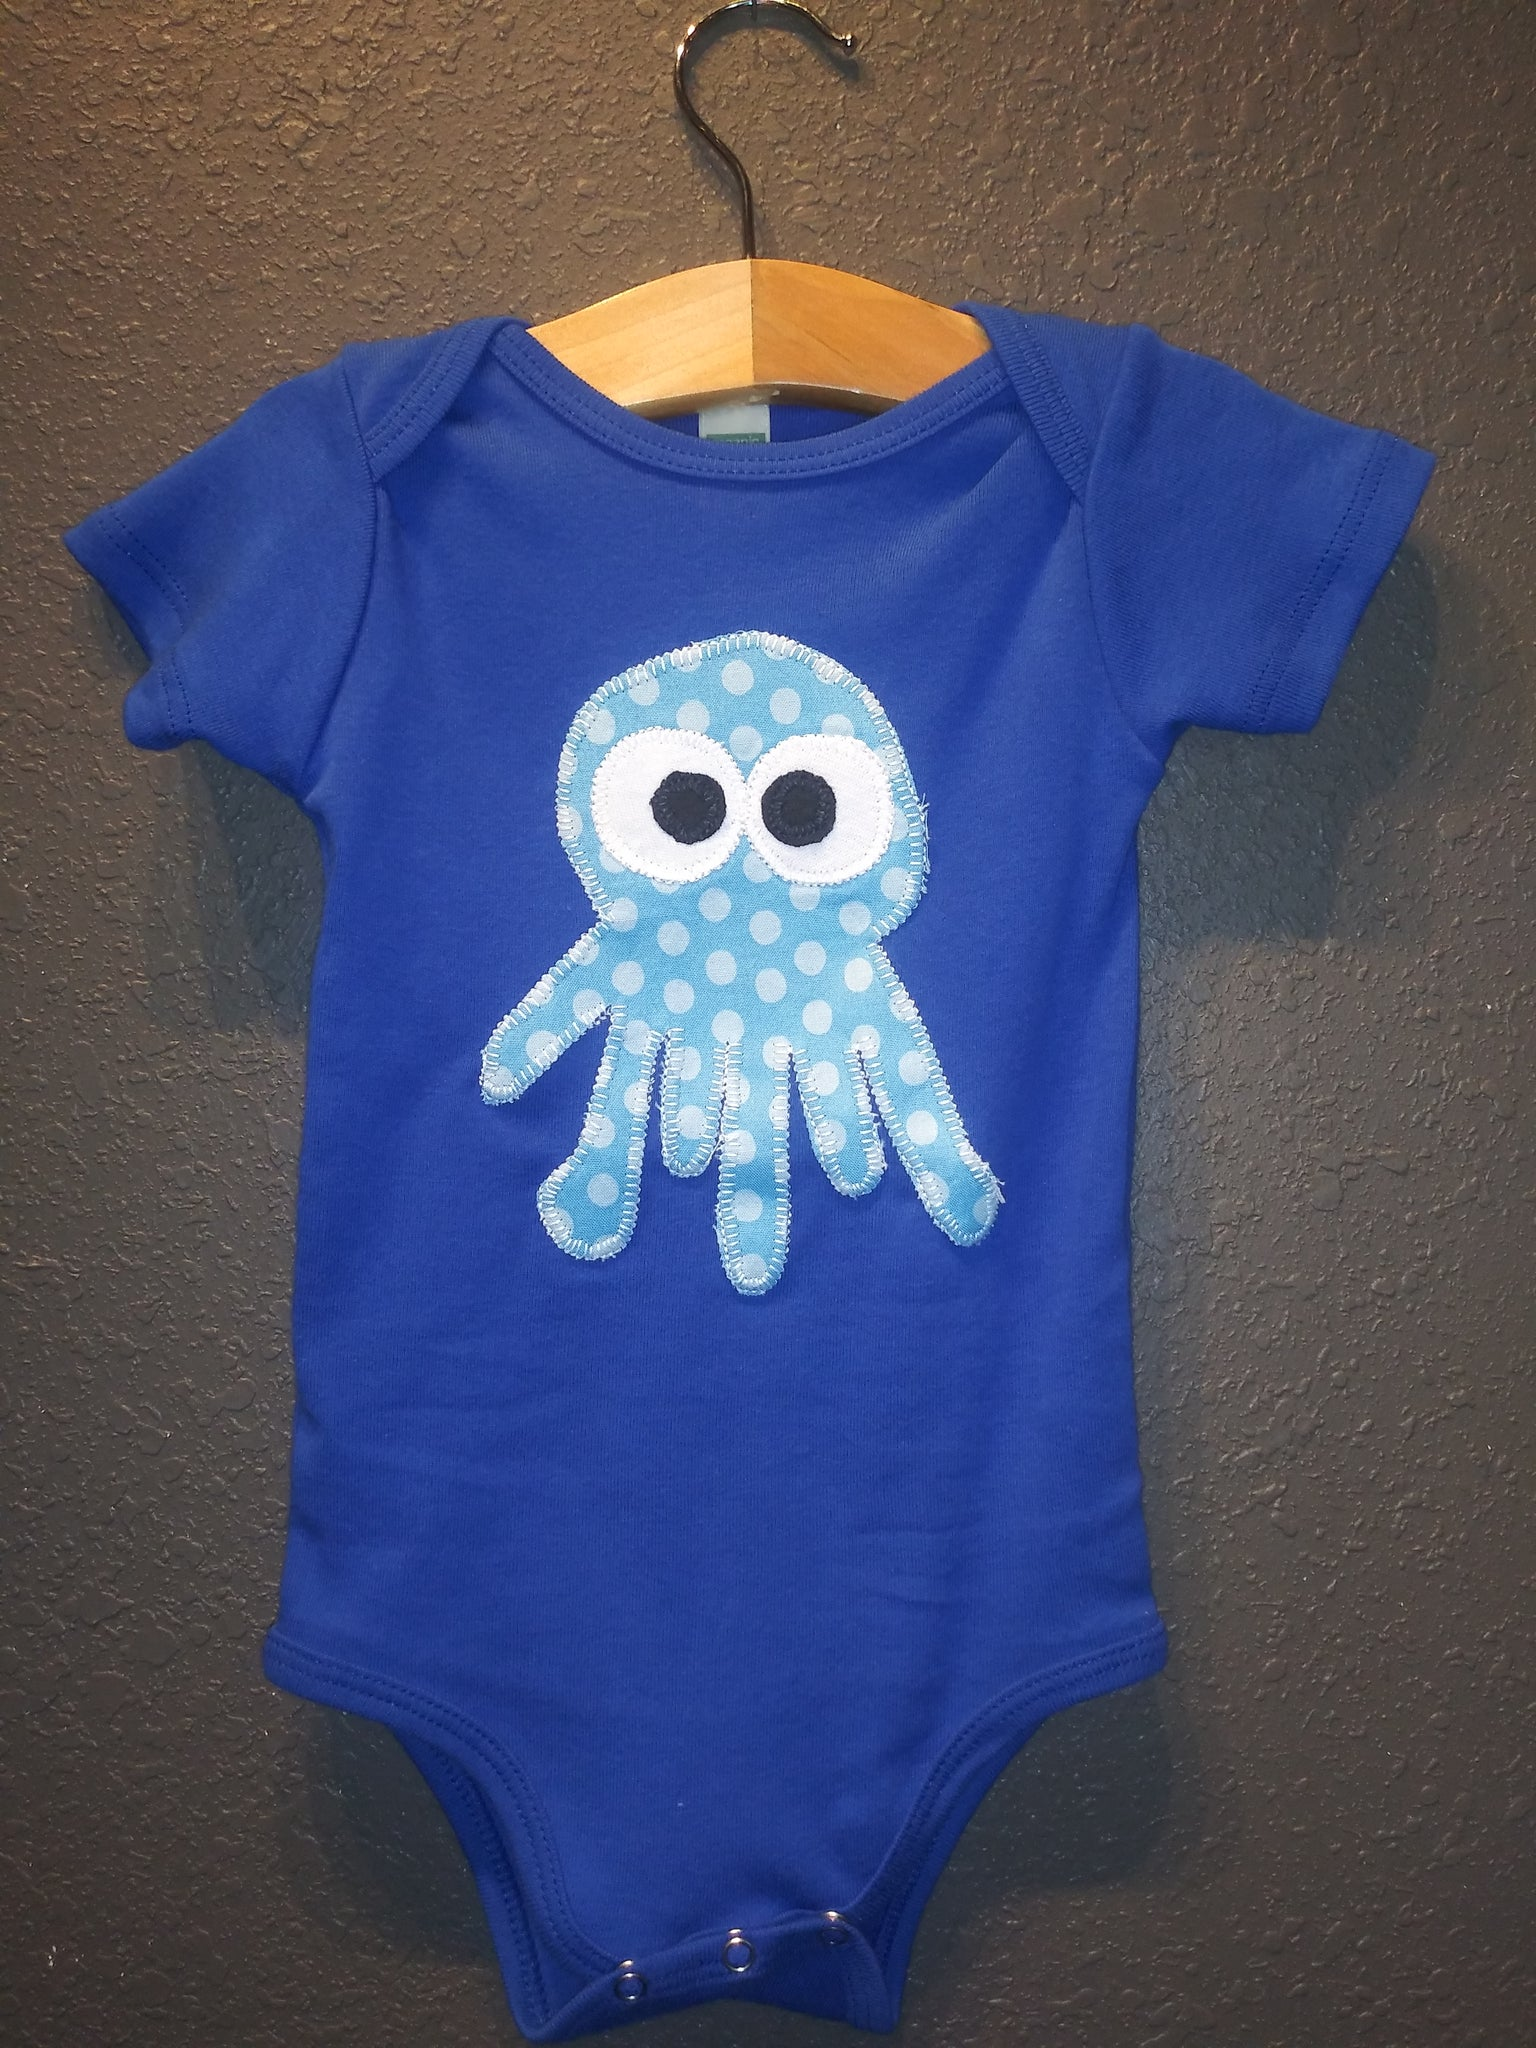 Octopus Onesie - Crunch Natural Parenting is where to buy